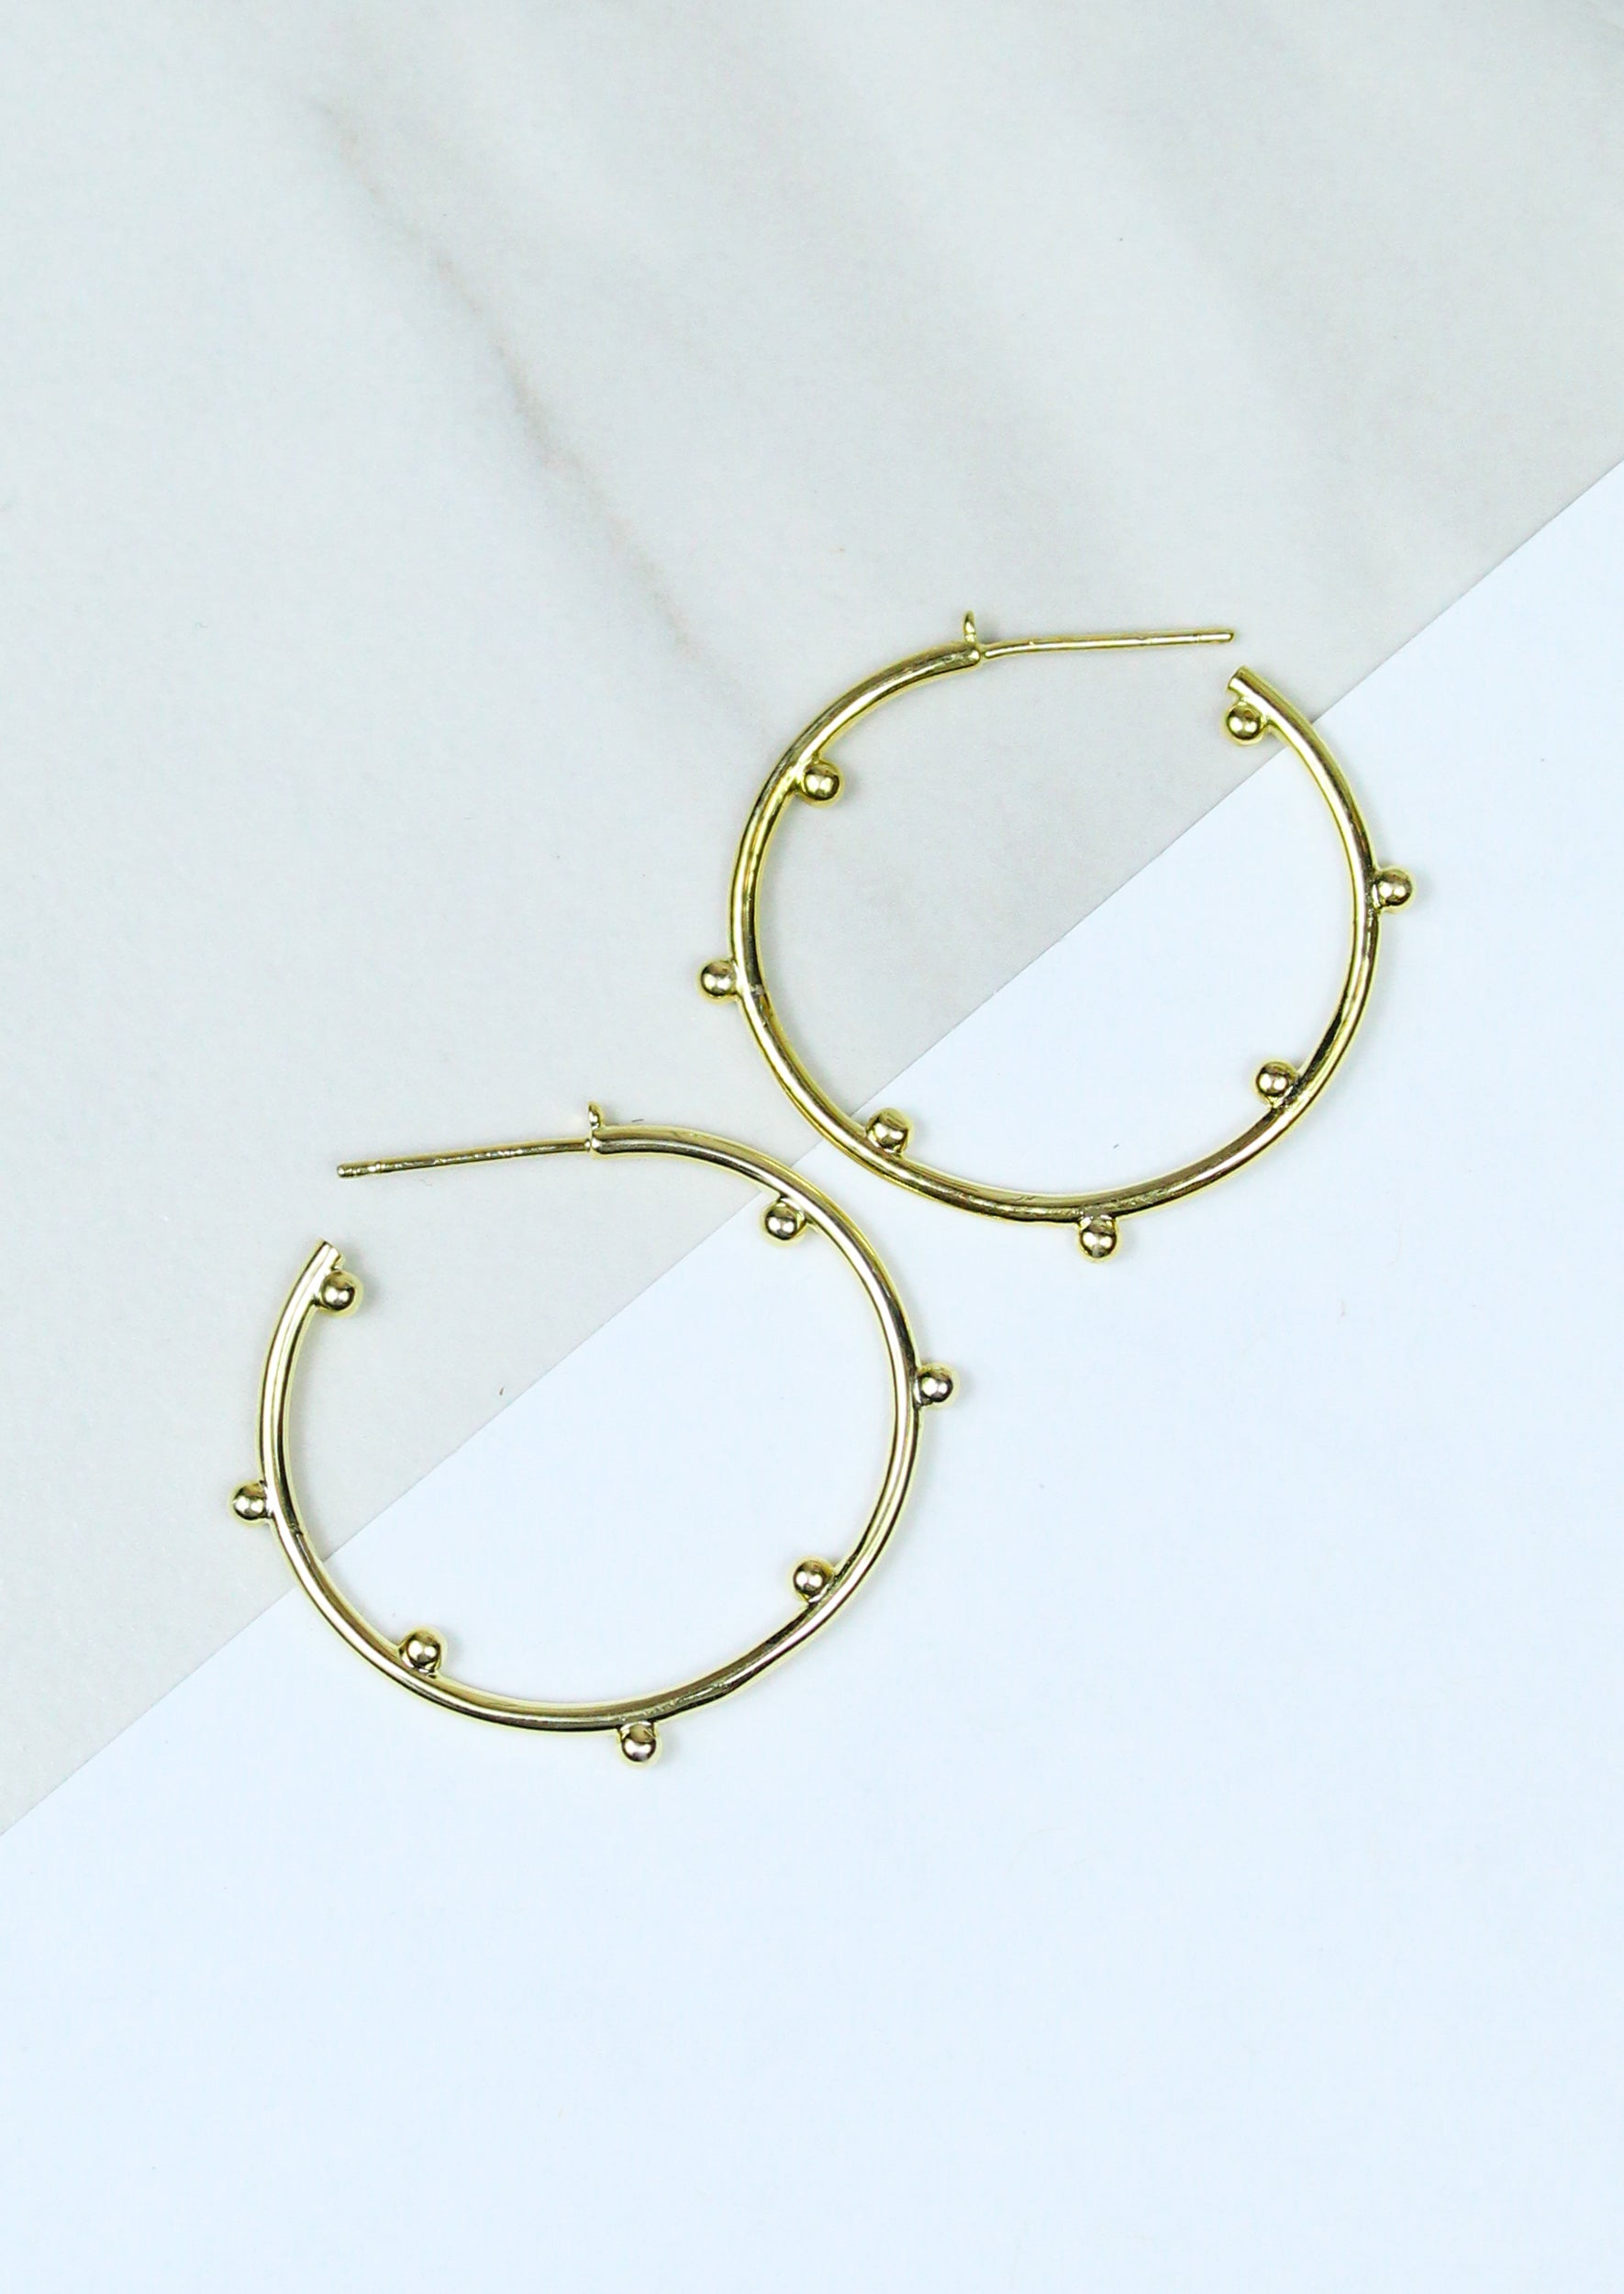 14K Gold Plated Hoop Earring with Round Bead Detail